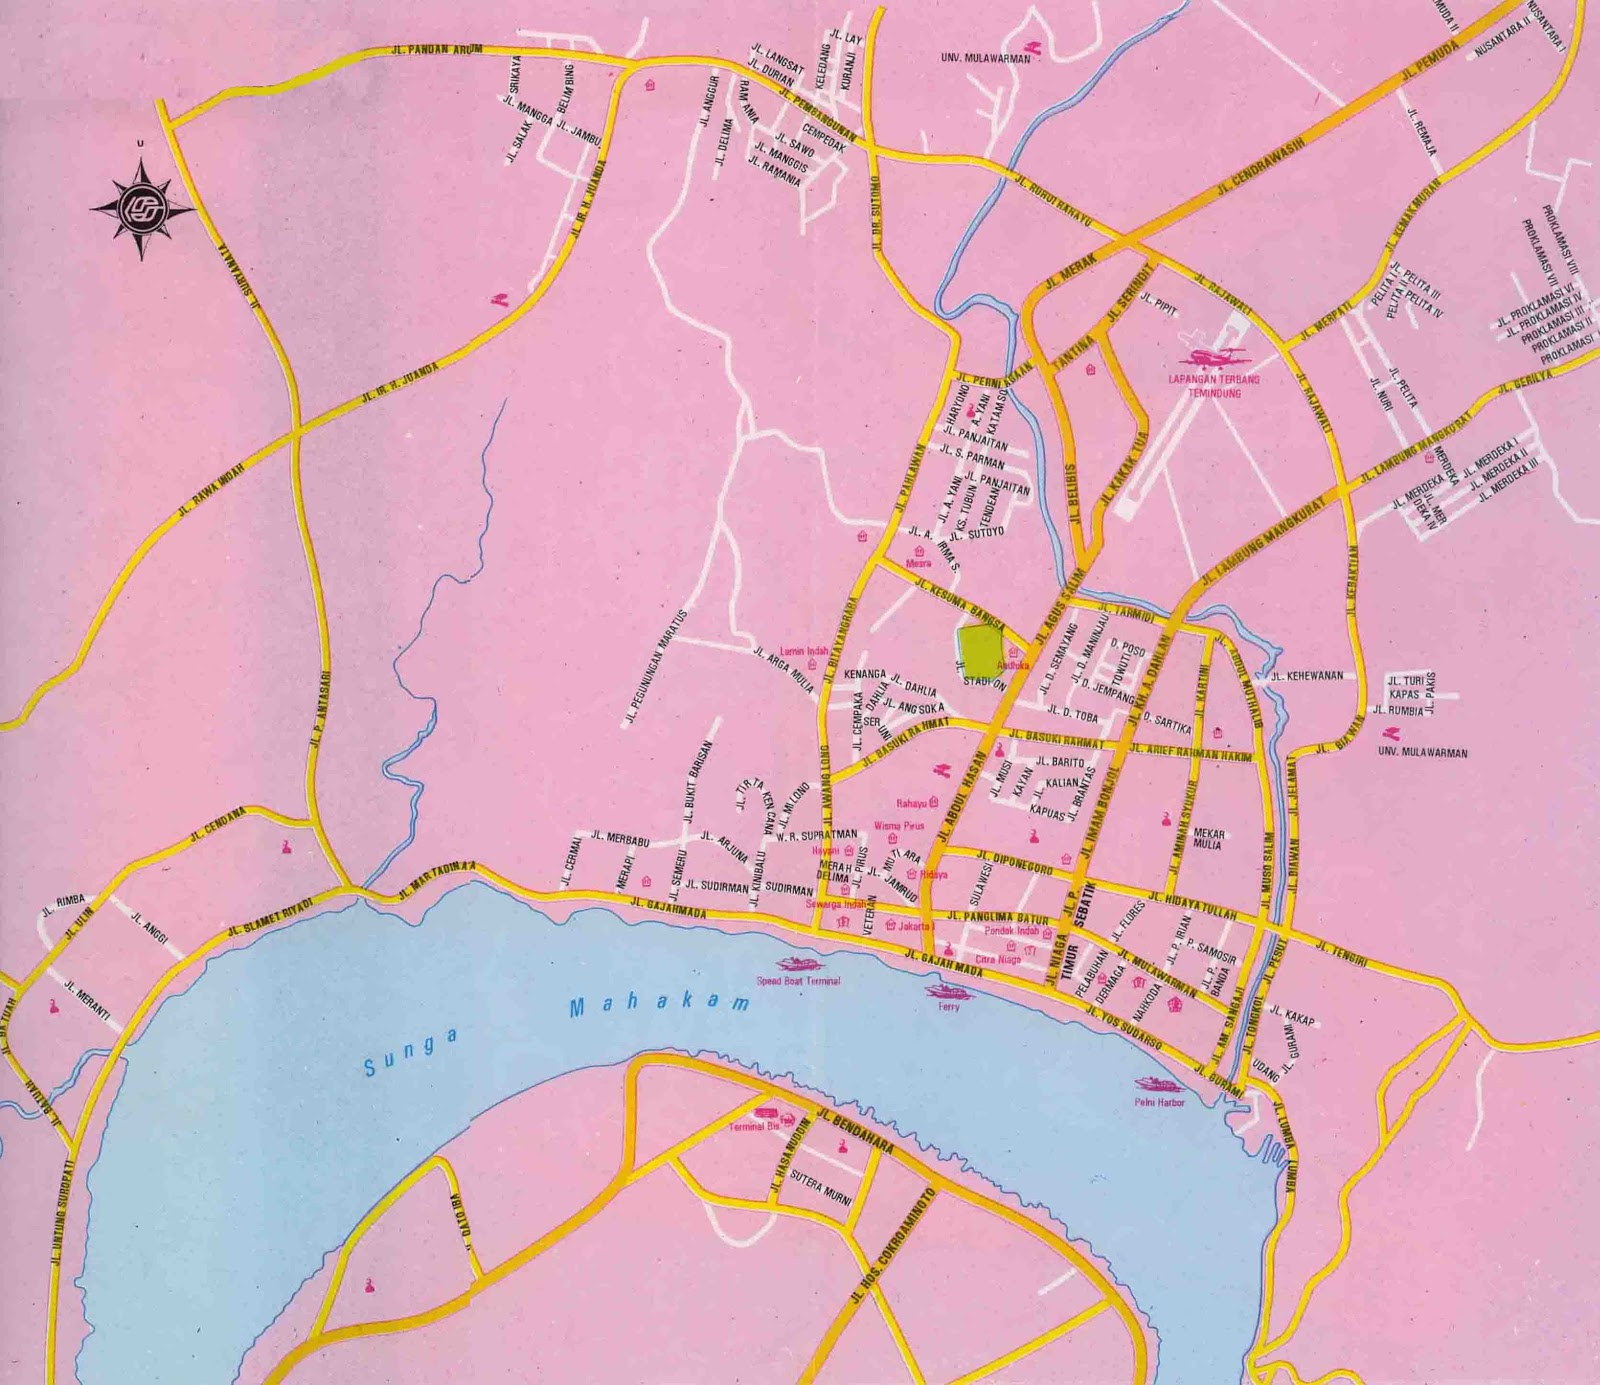 DESNANTANA JOURNEY: Samarinda City Map